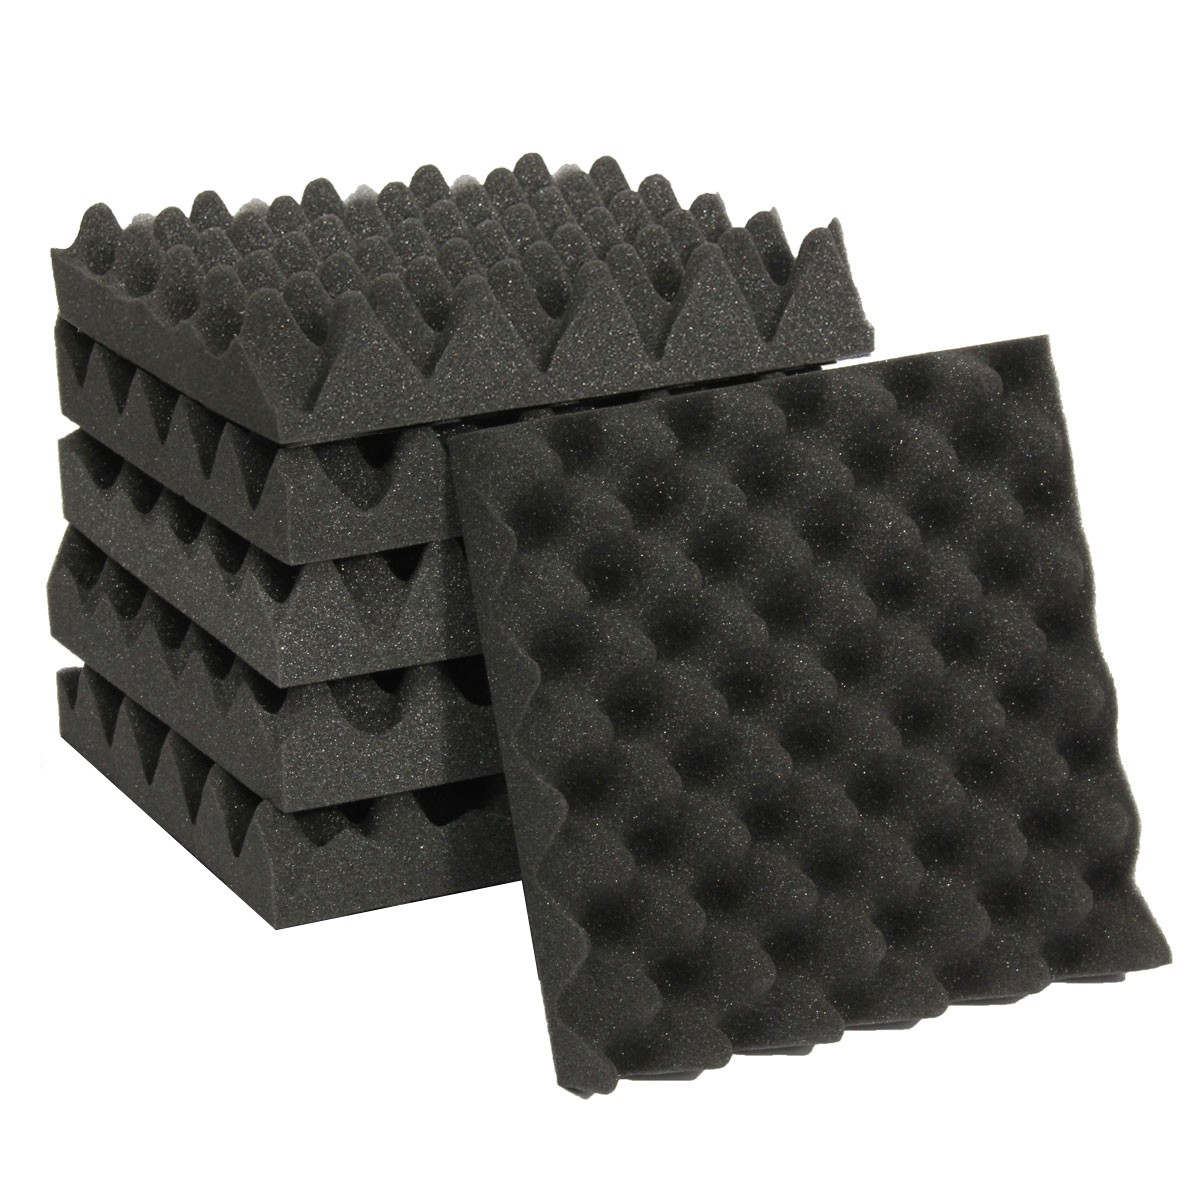 6Pcs 25X25X5CM Studio Acoustic Wedge Studio Foam Sound Noise Insulation Sponge Absorption Treatment Panel Tile